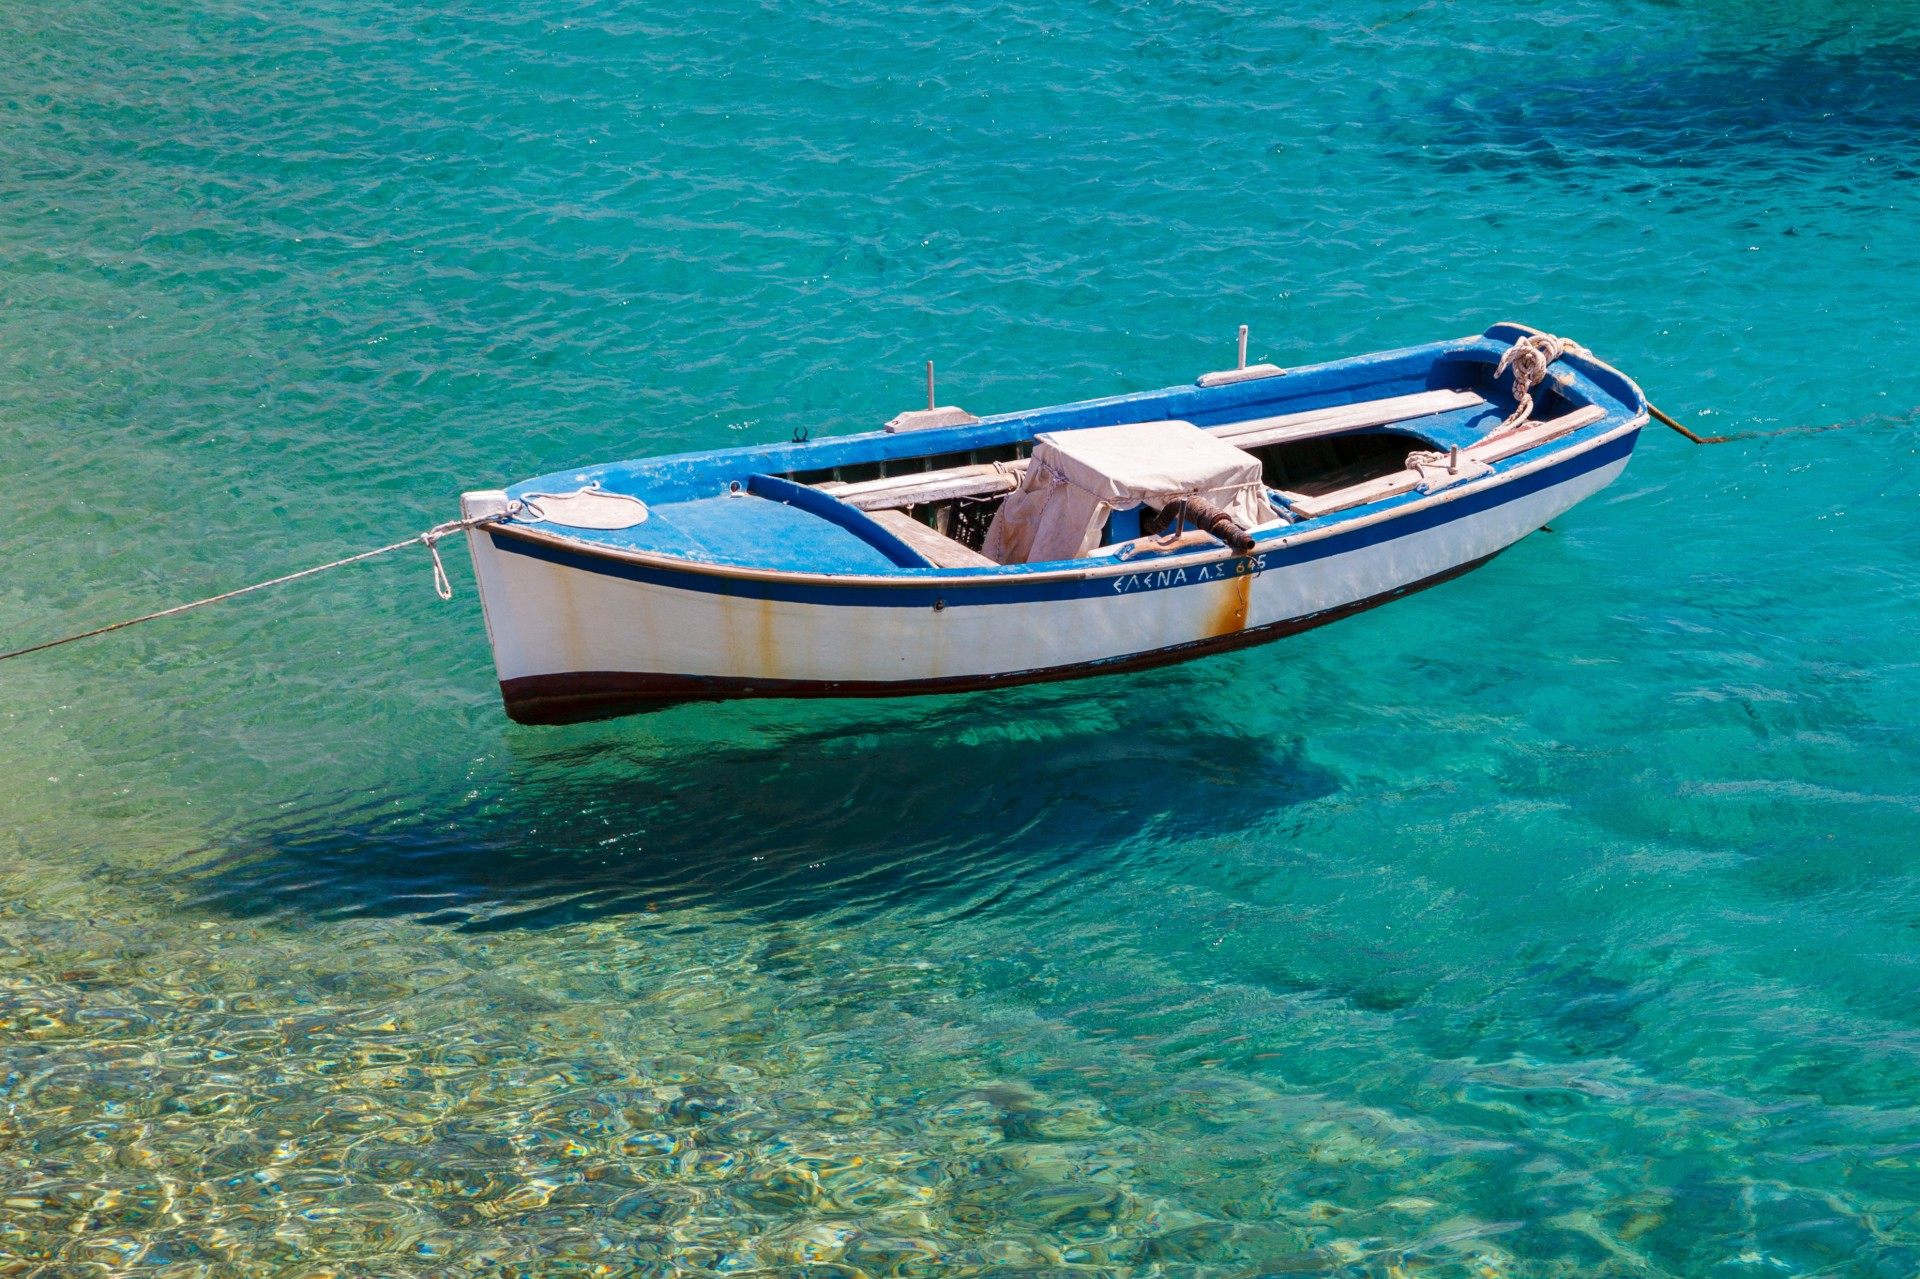 Blue White Boat Free Stock Photo - Public Domain Pictures